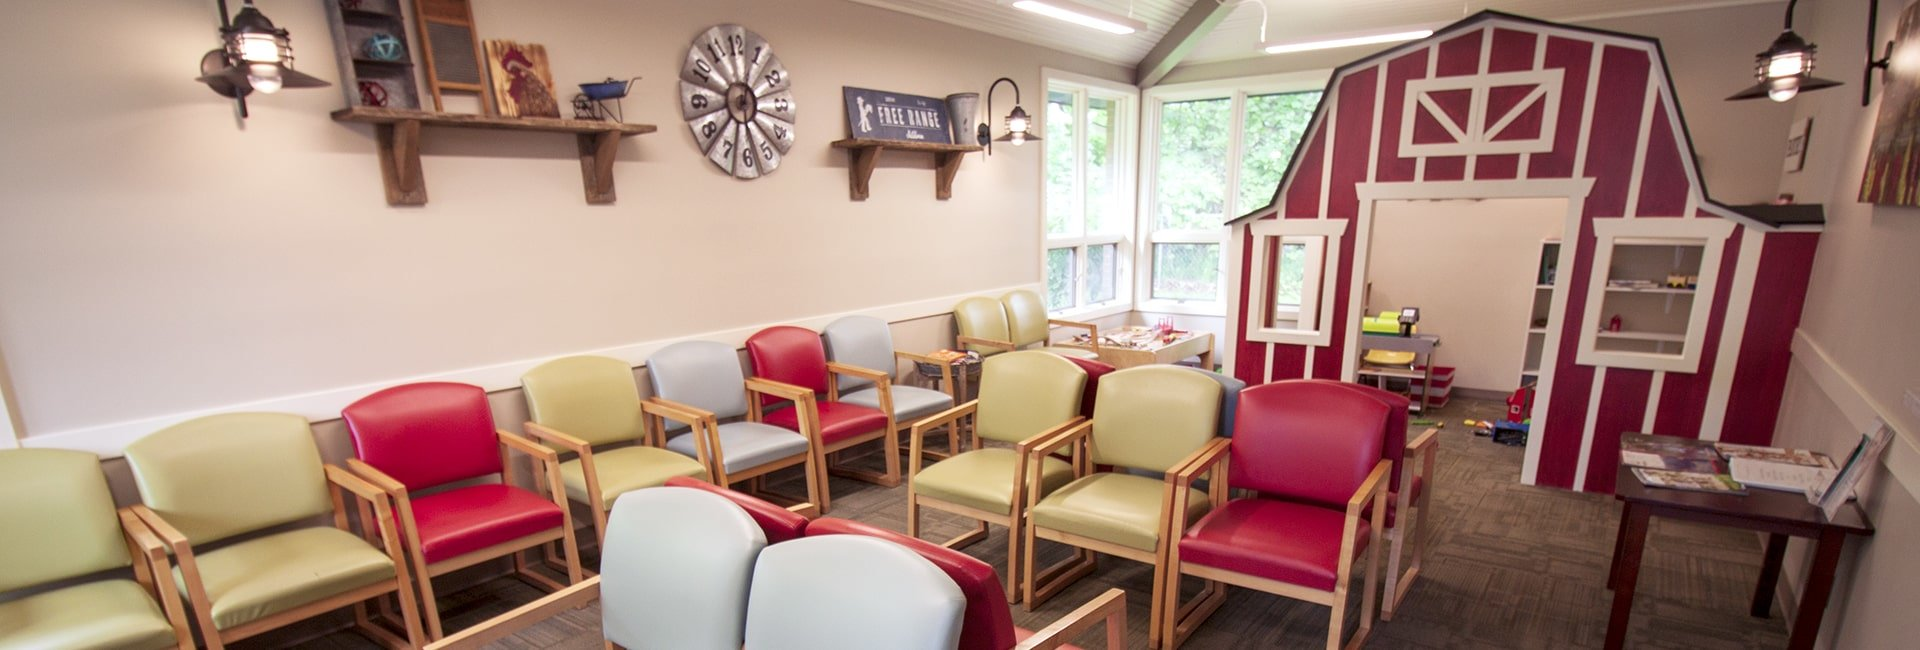 Kalamazoo Pediatric Dentistry